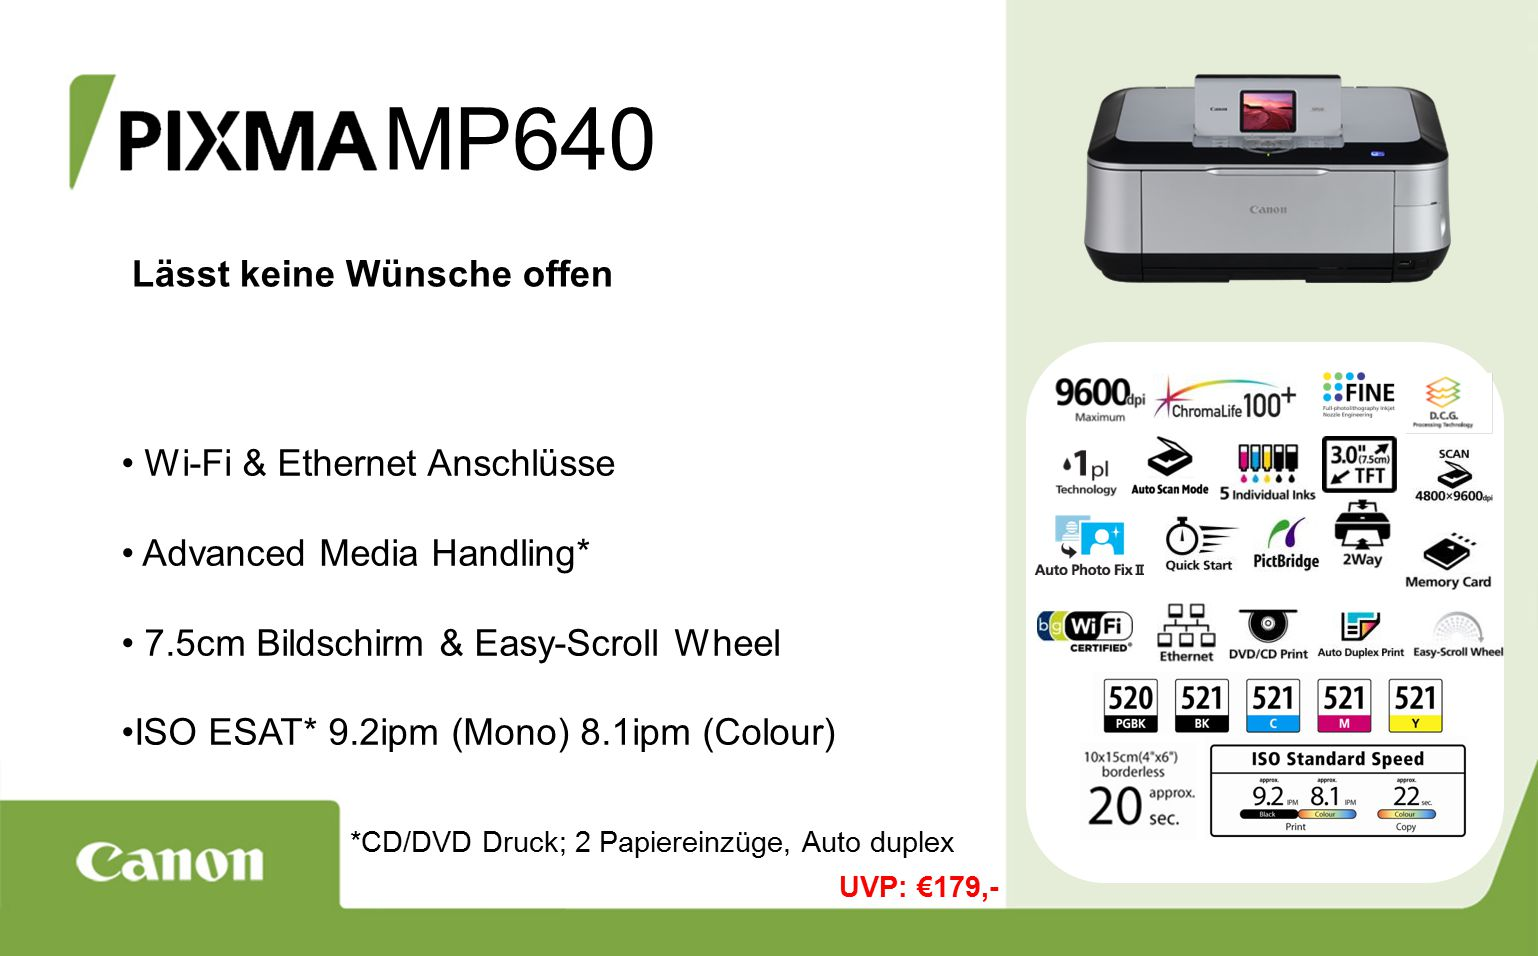 MP640 Lässt keine Wünsche offen Wi-Fi & Ethernet Anschlüsse Advanced Media Handling* 7.5cm Bildschirm & Easy-Scroll Wheel ISO ESAT* 9.2ipm (Mono) 8.1ipm (Colour) *CD/DVD Druck; 2 Papiereinzüge, Auto duplex UVP: €179,-